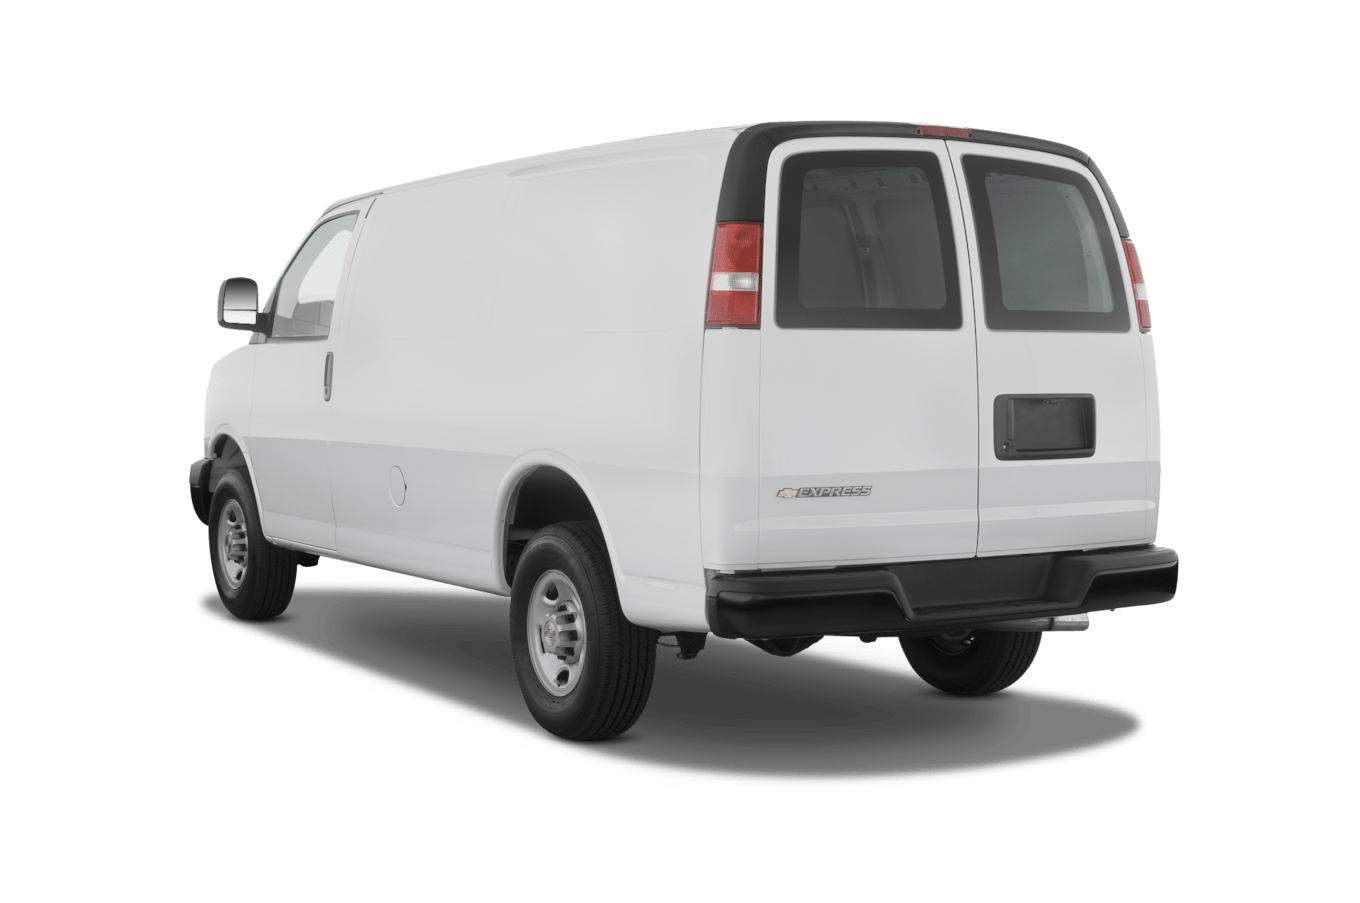 hight resolution of 2013 chevy express 3500 wiring diagram chevrolet express 3500 wiring diagramrh svlc us